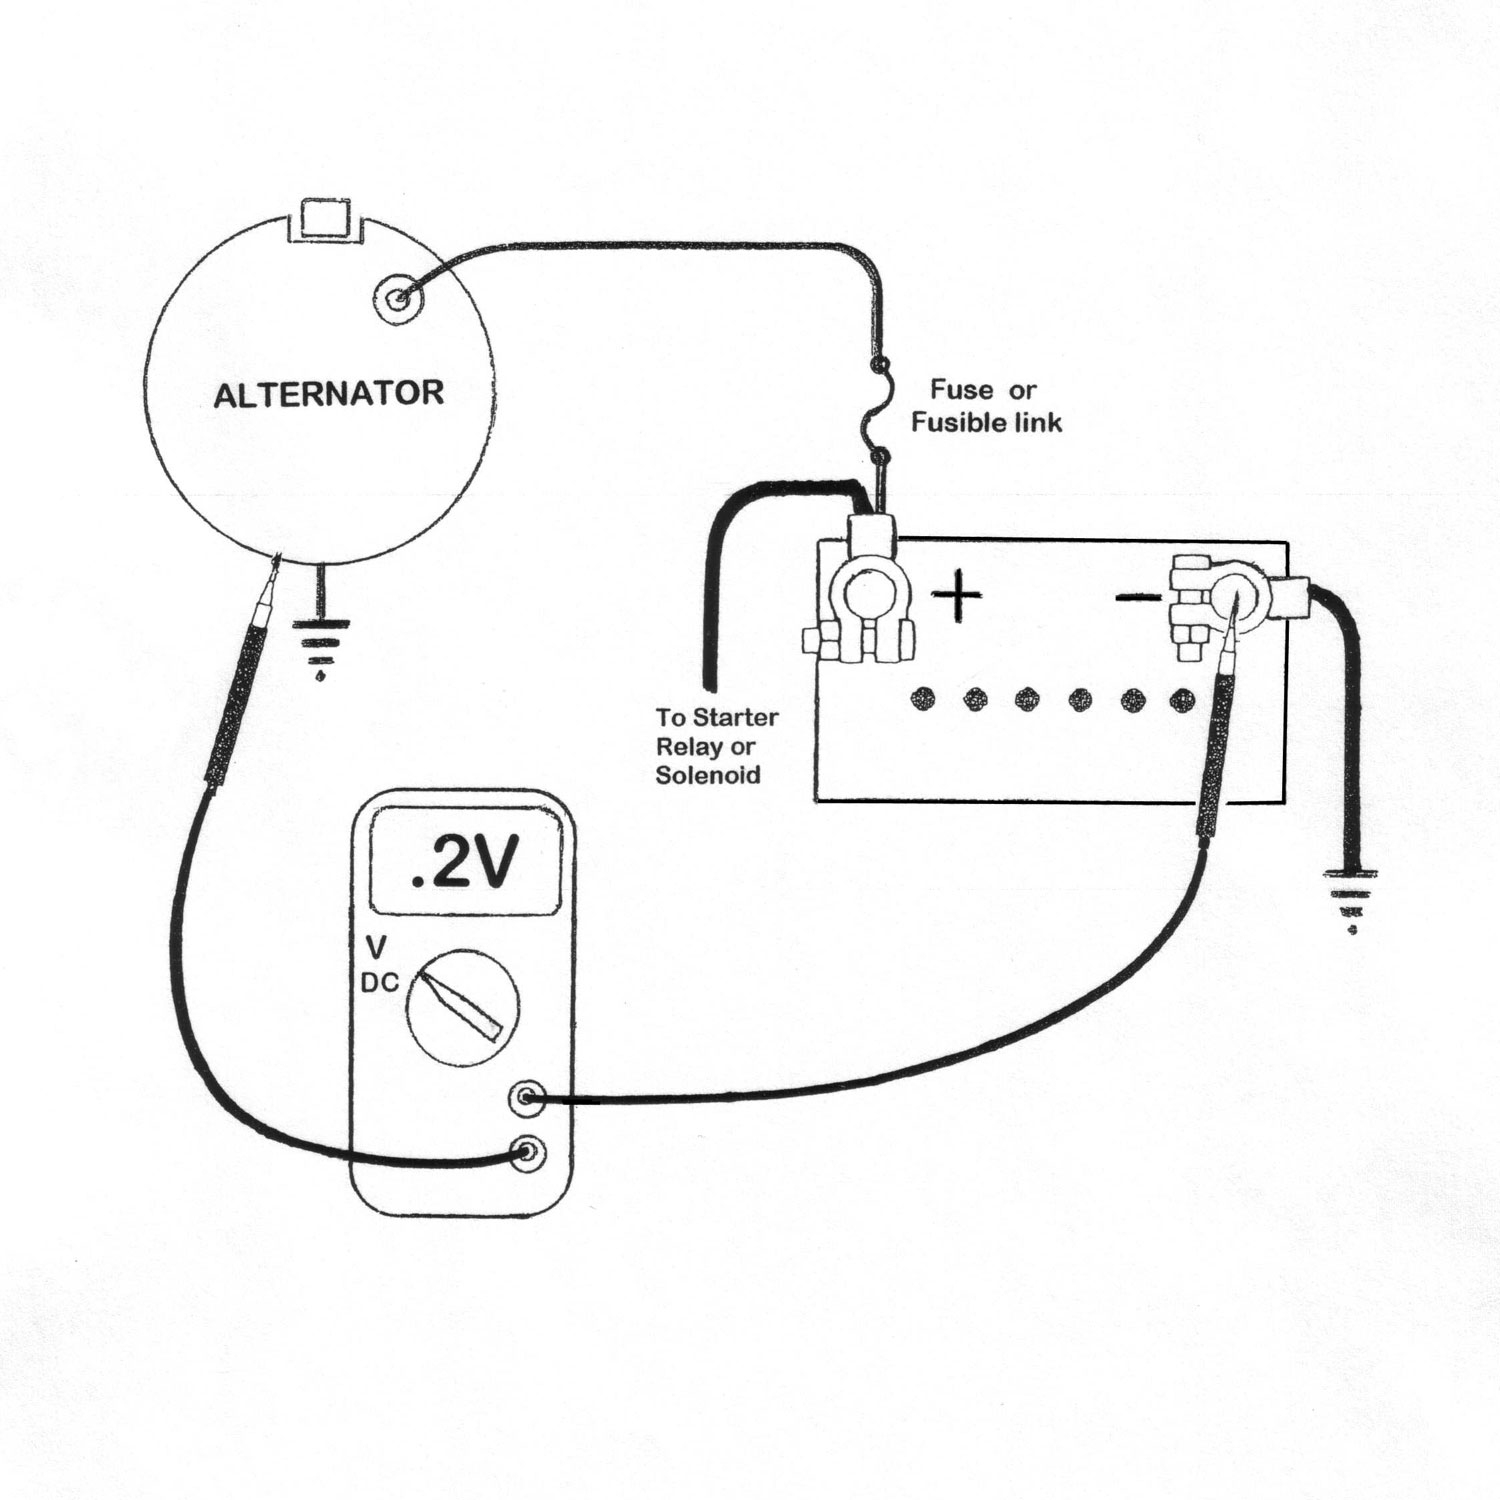 Reduce Warranties With Battery & Voltage Drop Tests | Napa Pro Series - Dual Alternator Wiring Diagram